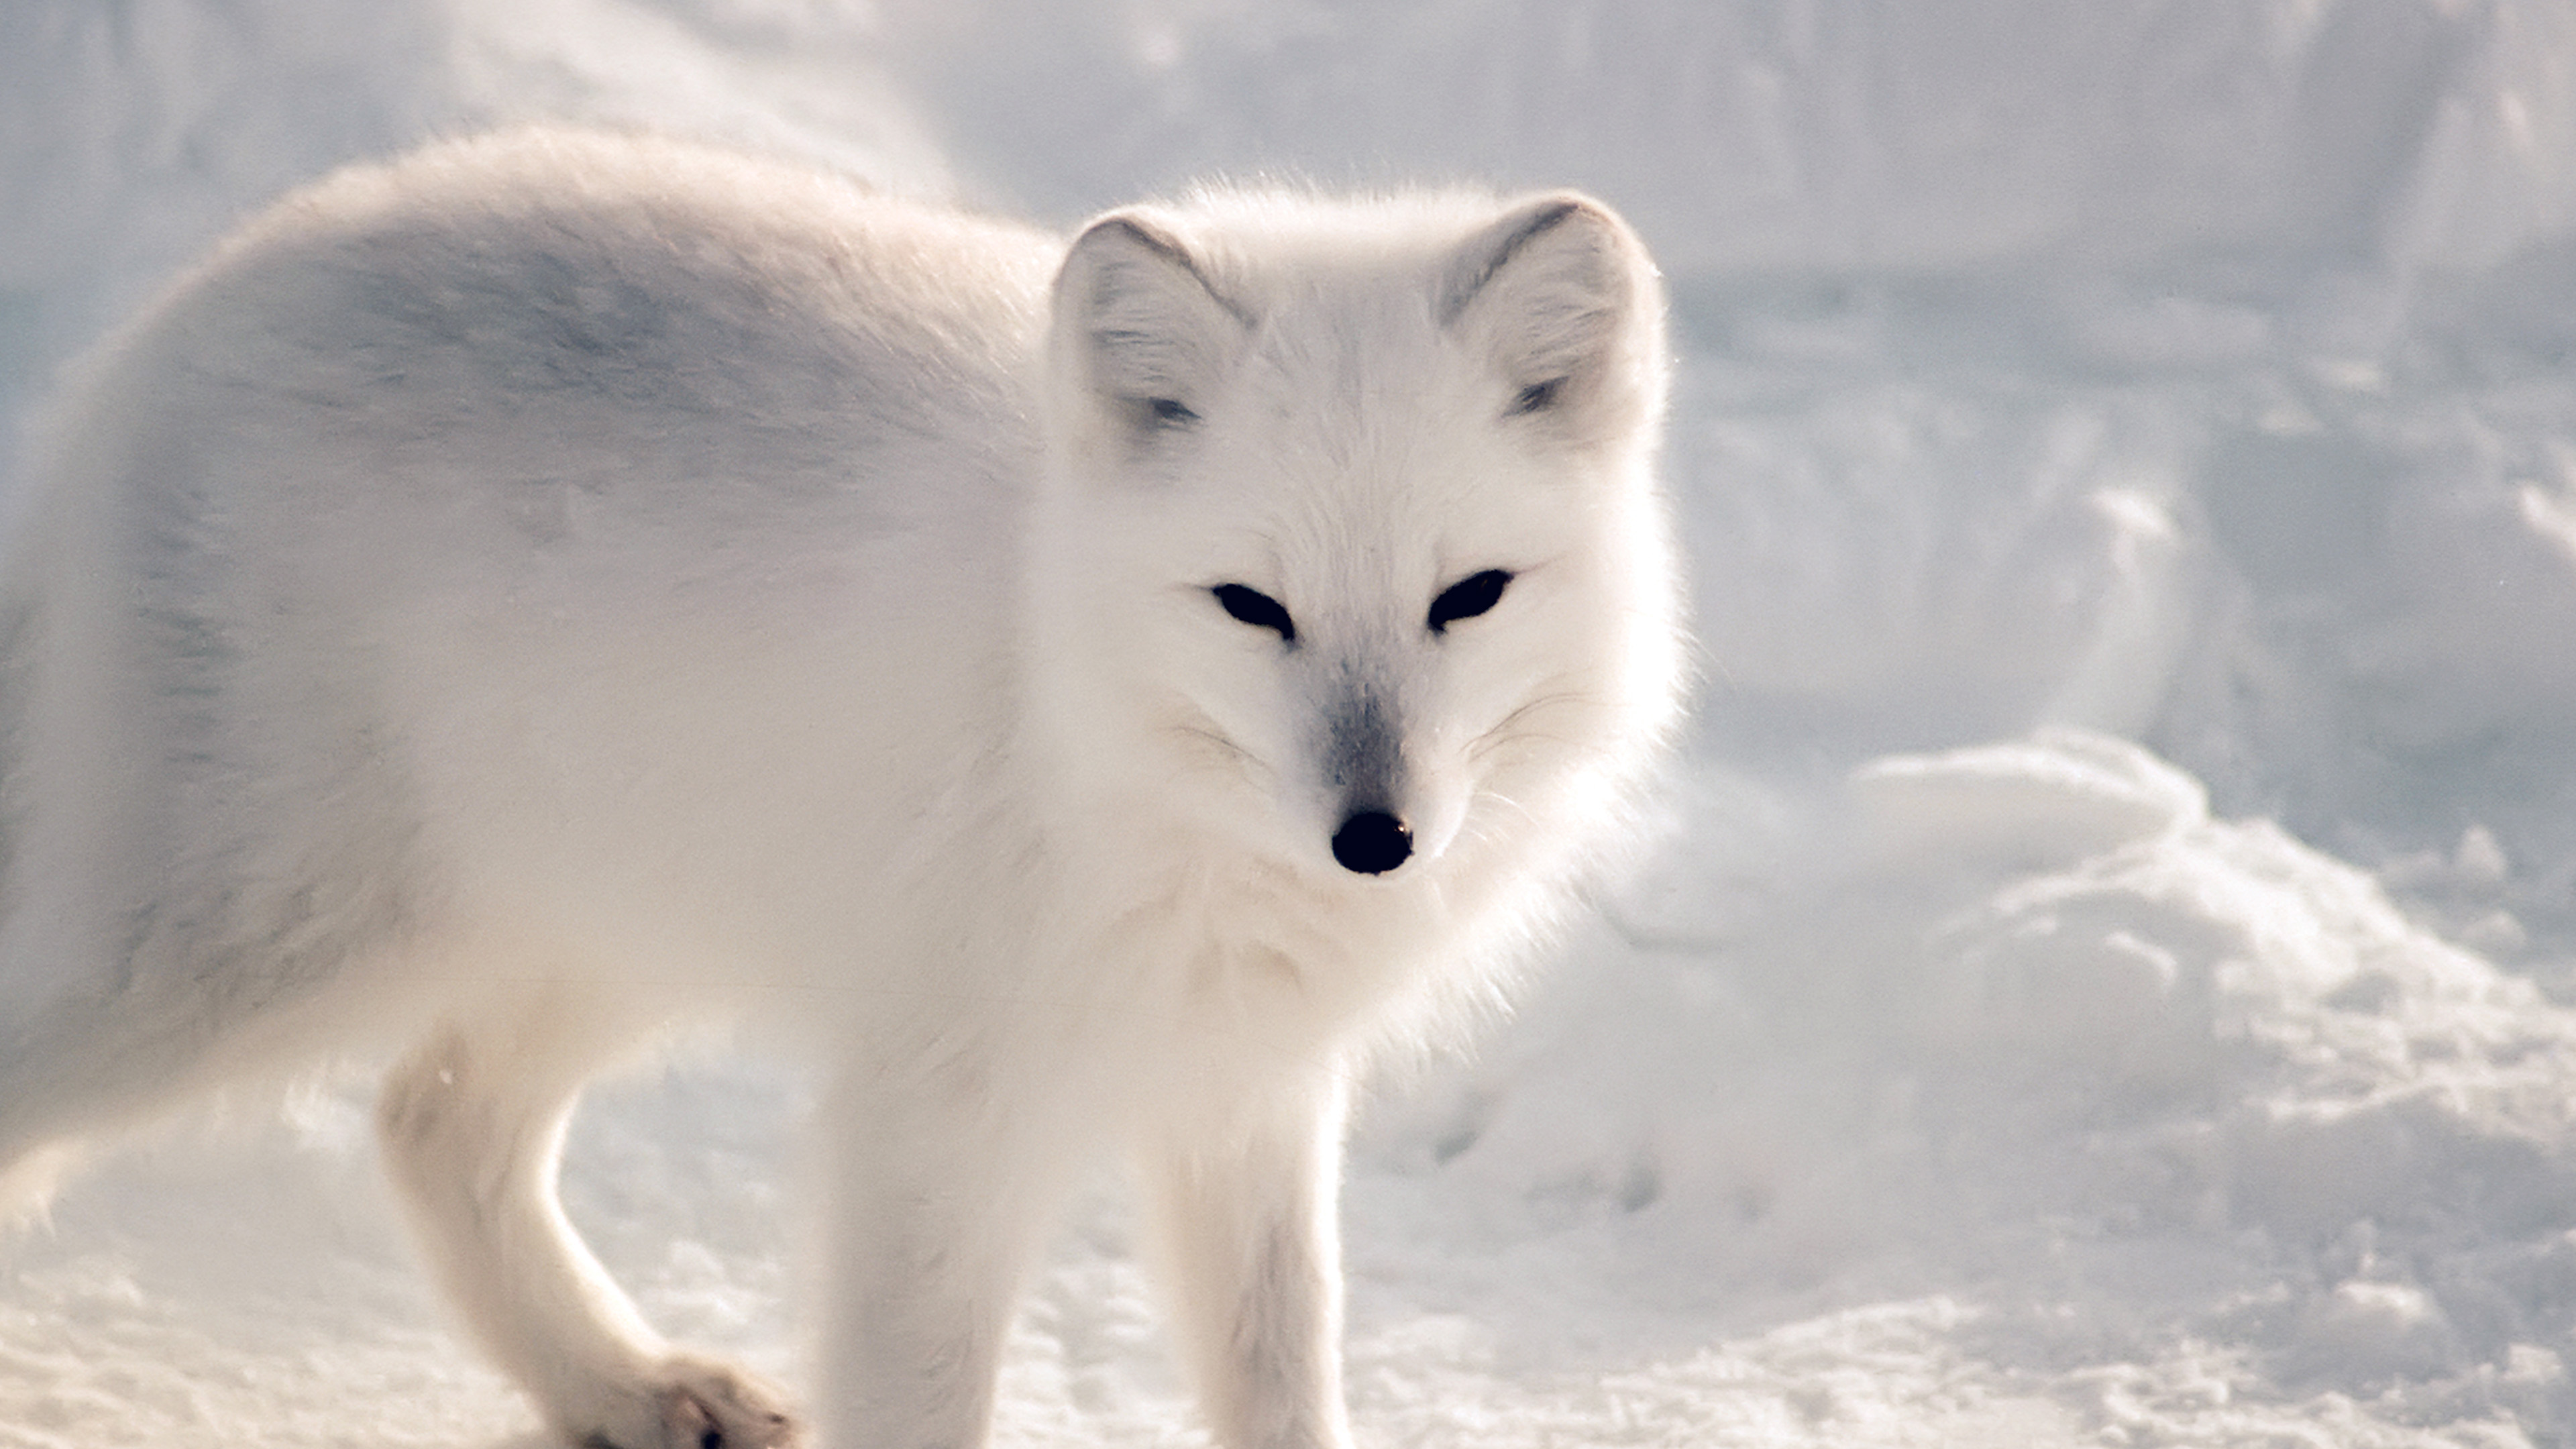 wallpaper for desktop, laptop | nf27-white-artic-fox-snow ... Dark Blue Background Hd